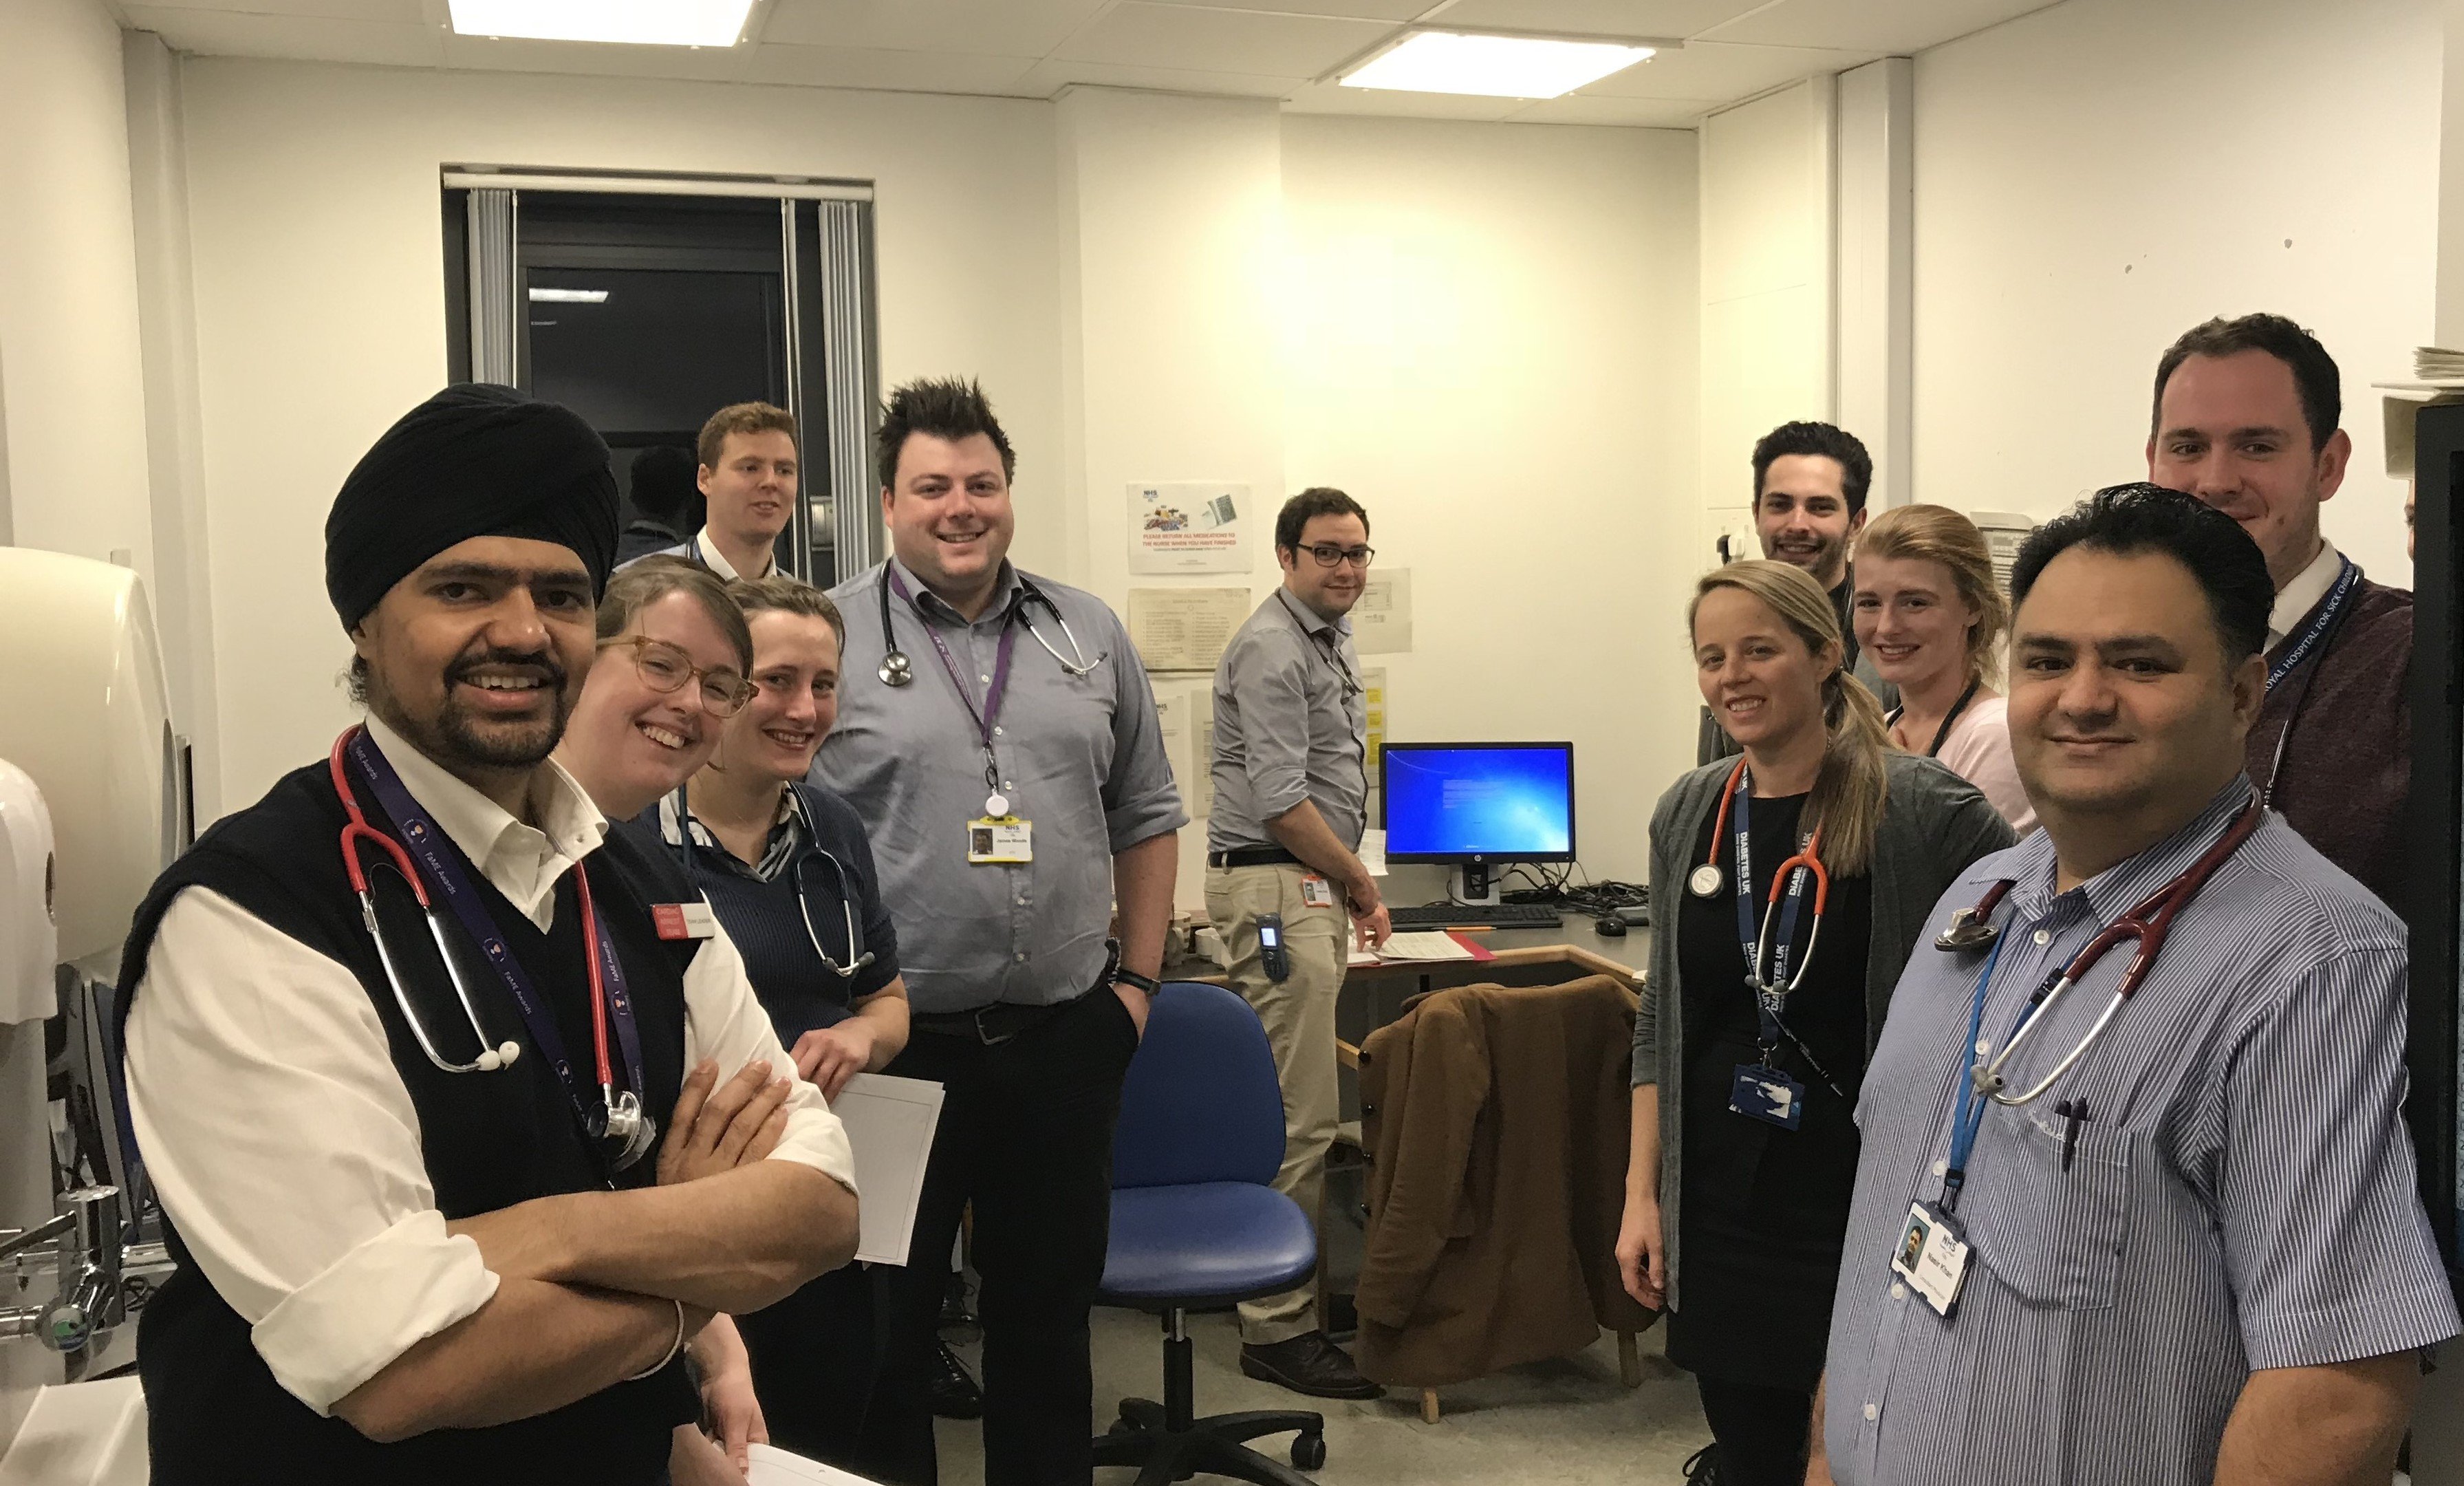 Some of the medical team who came in on Saturday morning - Jagdeep Singh, Rebecca Patton, Sophia Henderson, Grant Milne, James Woods, Lewis Gray, Karl Bonello,  Emma Turtle, Sophie Knights, Malcolm Scobbie, and Nasir Khan